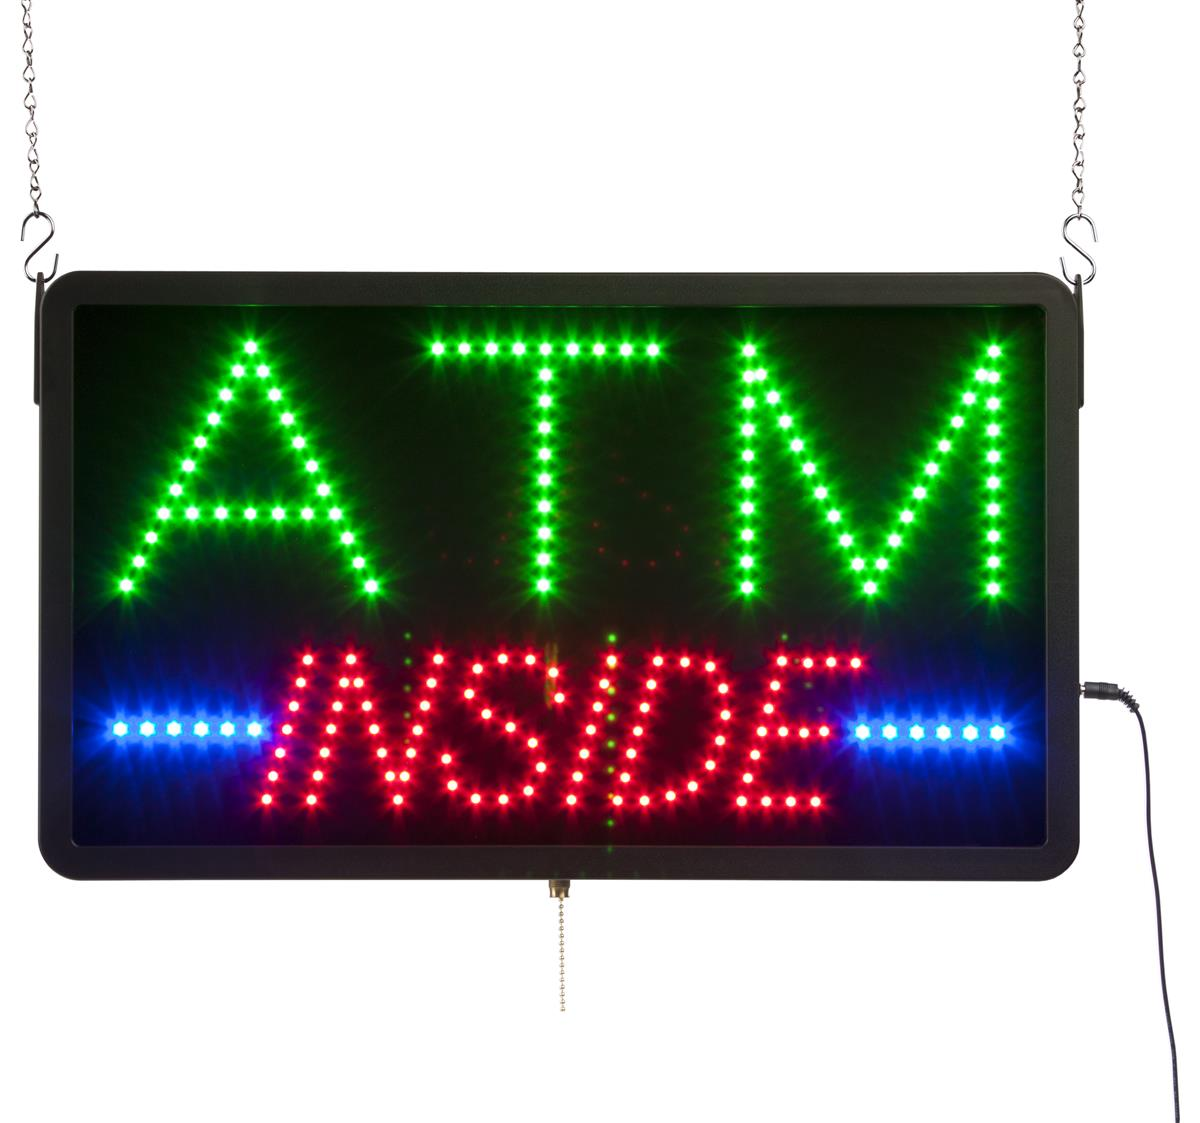 Displays2go ATM INSIDE Animated LED Sign with Chains, Rec...